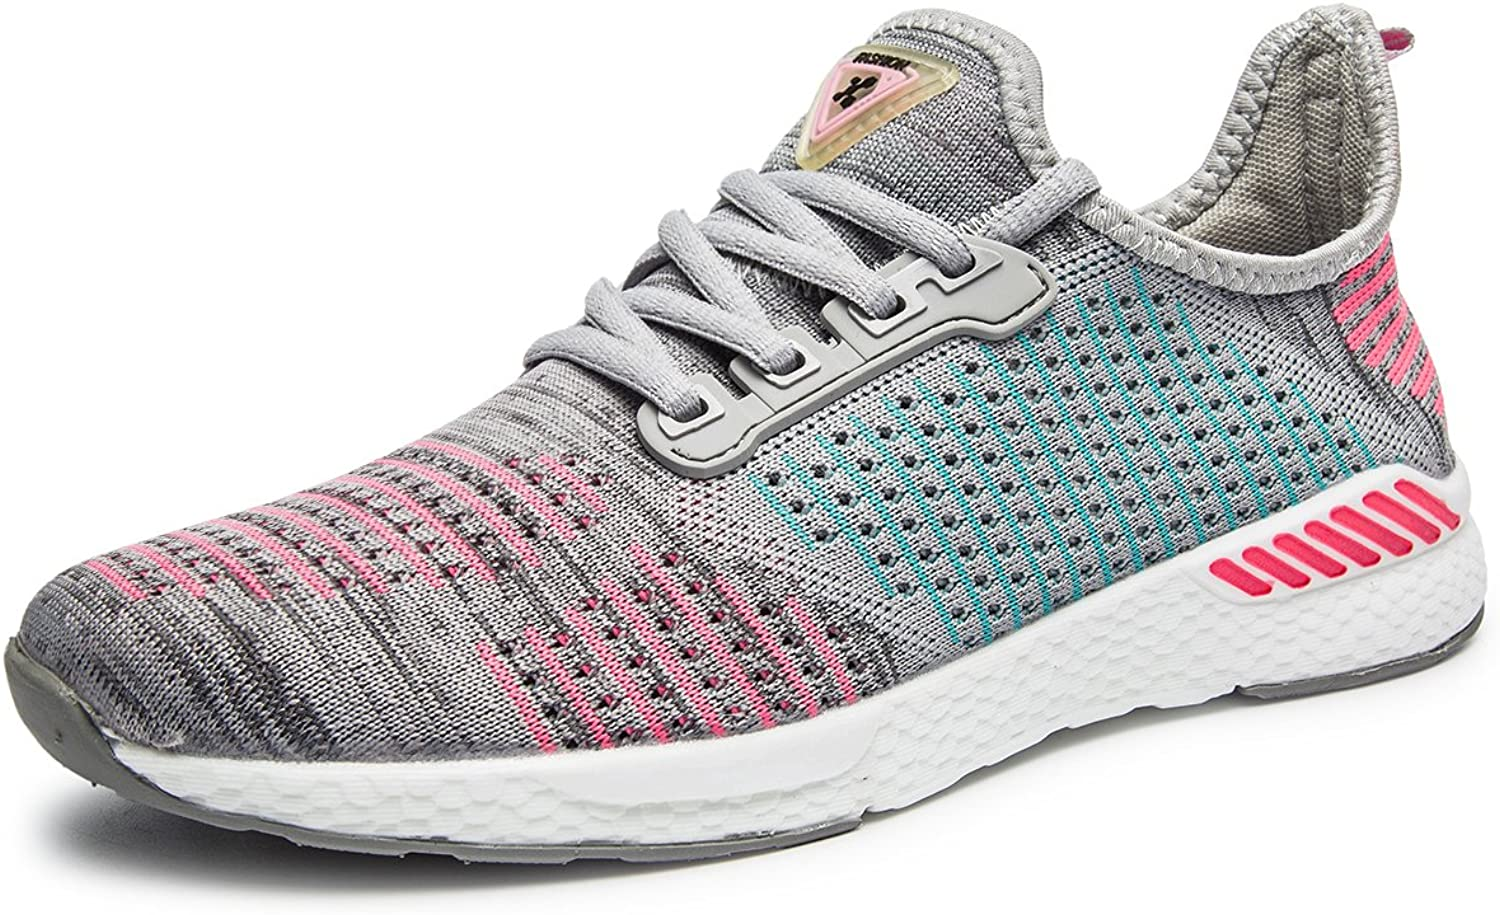 ABDVOOD Men Women Road Running shoes Lightweight Breathable Knitted Walking shoes Jogging Sneakers